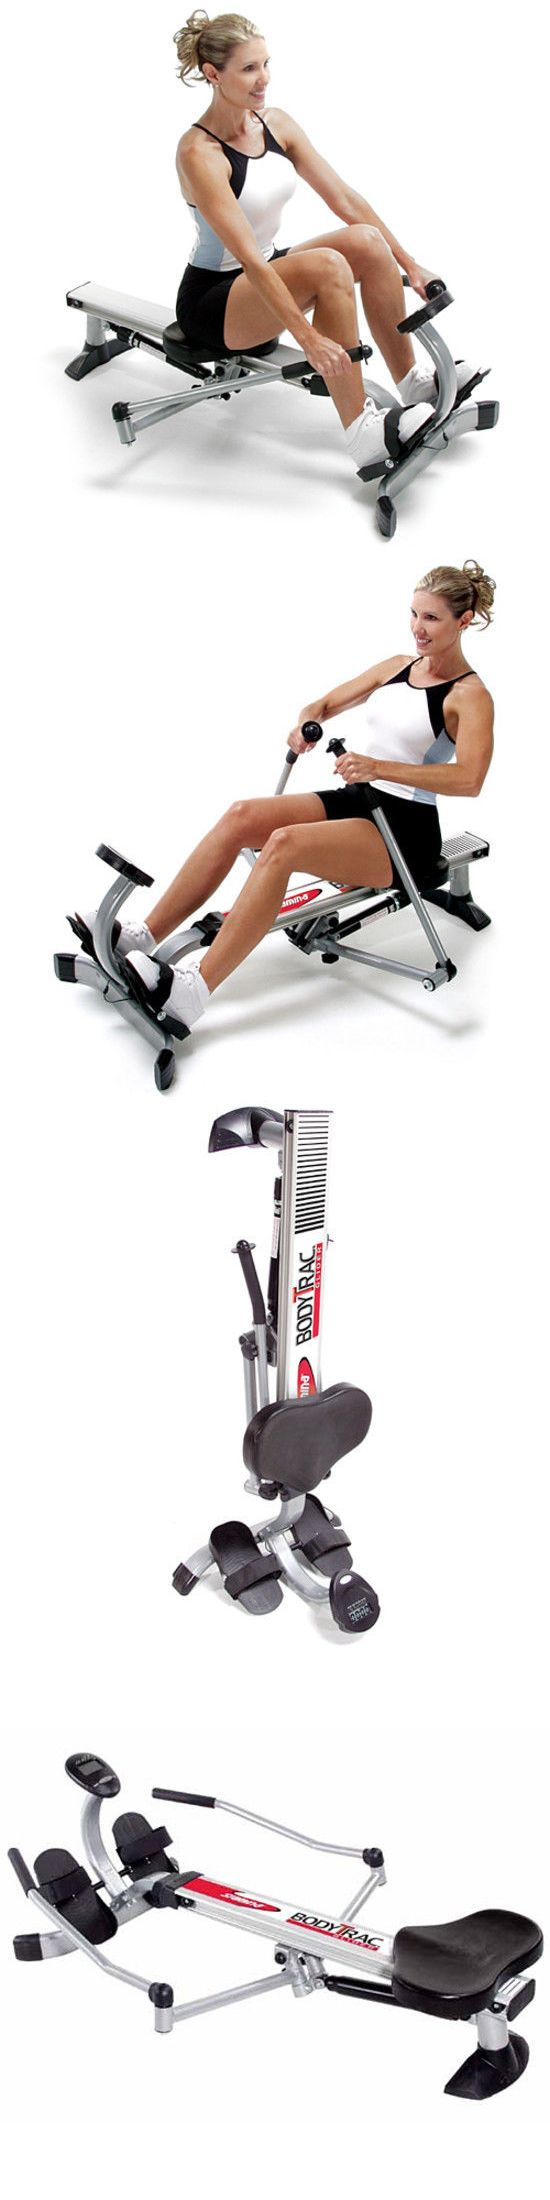 Rowing Machines 28060: Stamina Body Trac Exercise Fitness Portable Folding Glider Rowing Machine Yoga -> BUY IT NOW ONLY: $158.99 on eBay!